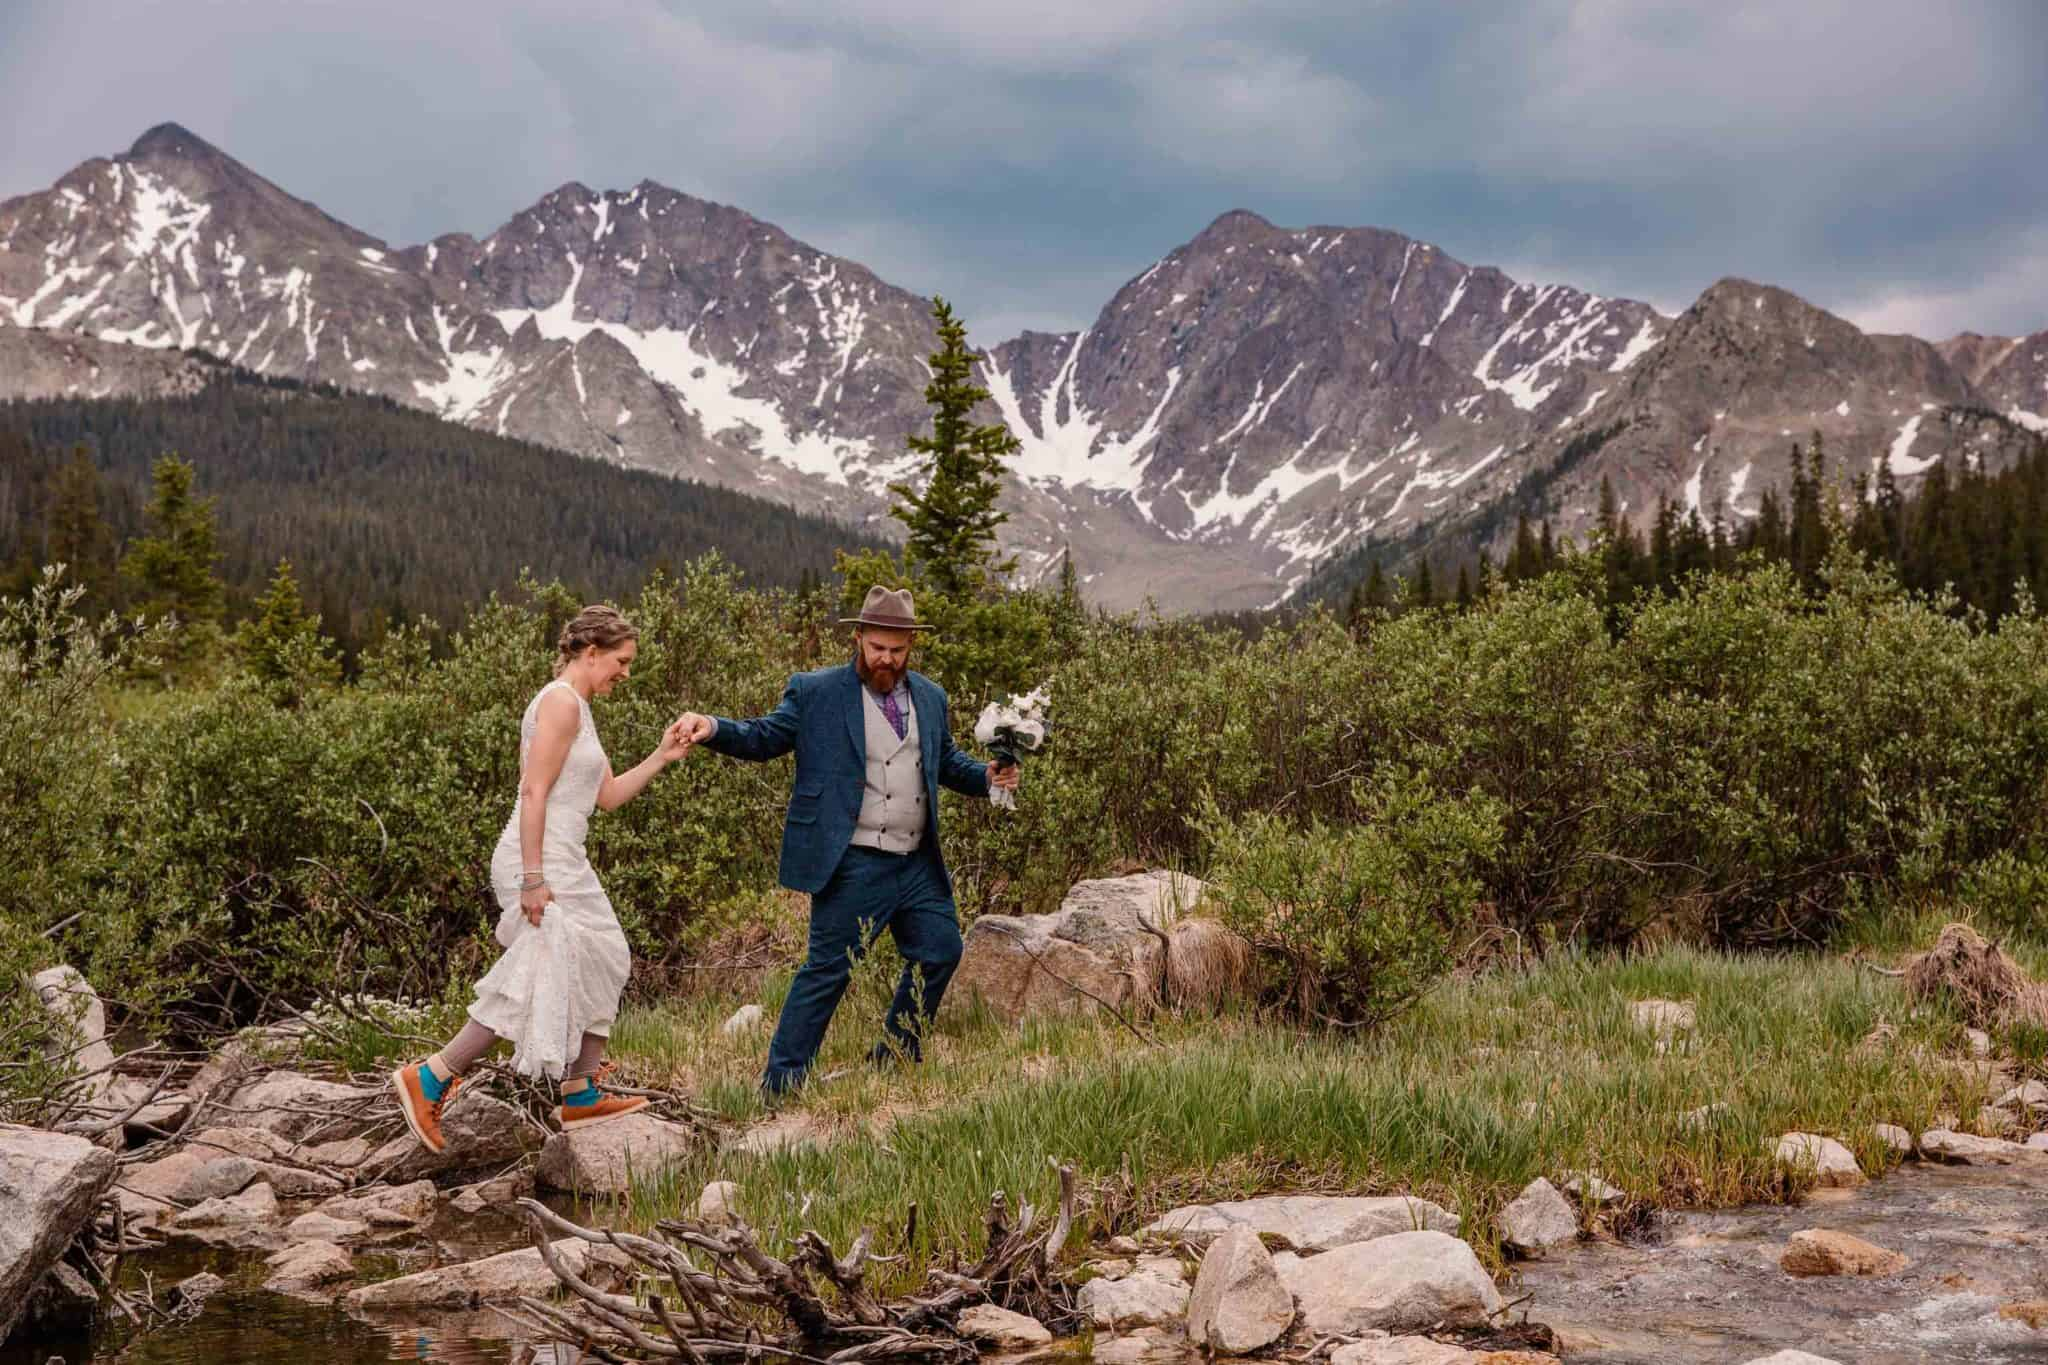 oregon elopement photographer taking photo of couple walking up a rock with the mountains behind them